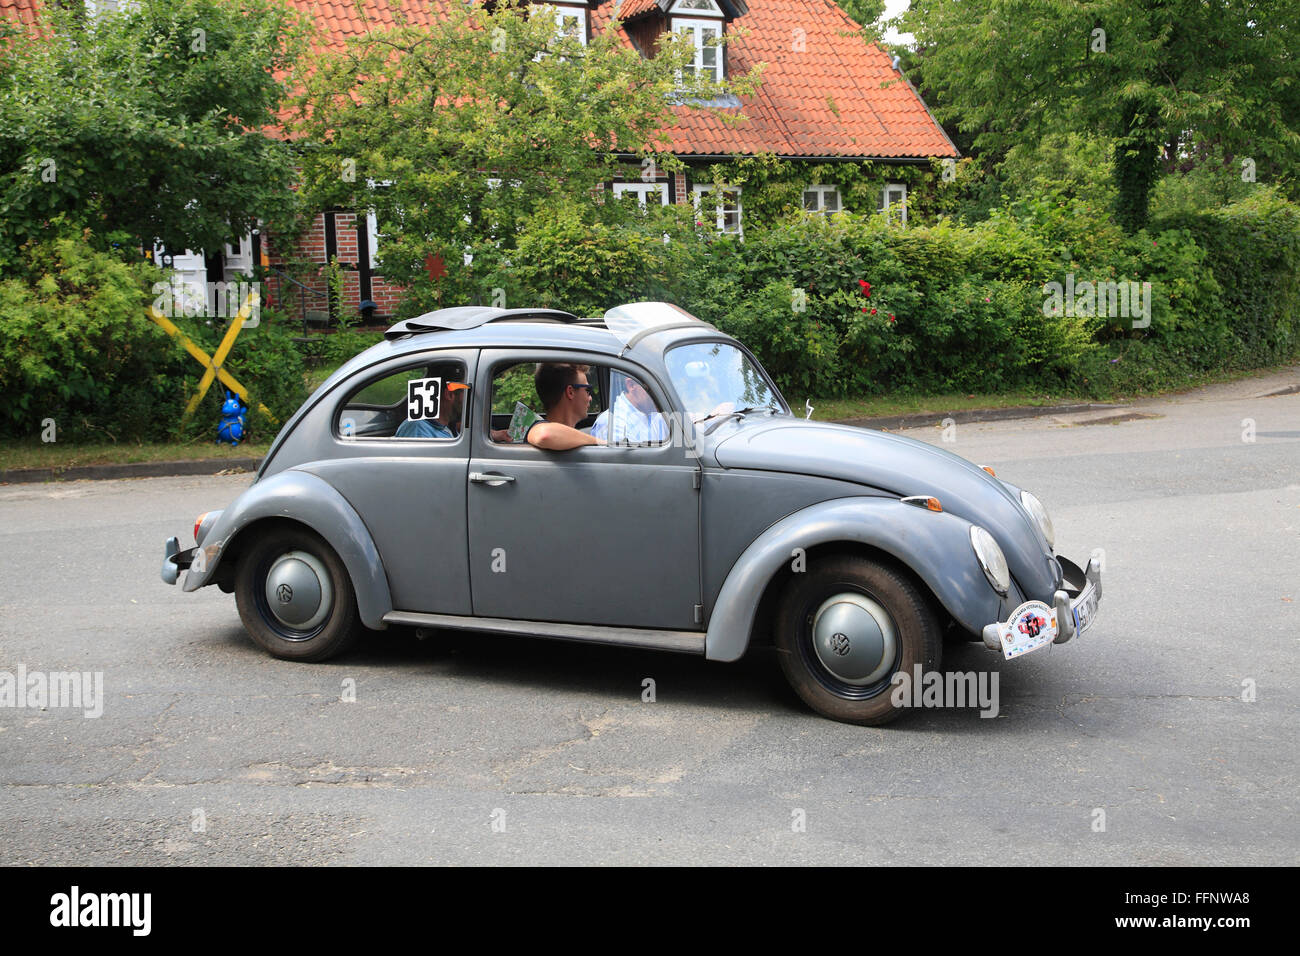 Oldtimer-Rallye, VW Beetle, Landkreis Lueneburg, Lower Saxony, Germany, Europe - Stock Image